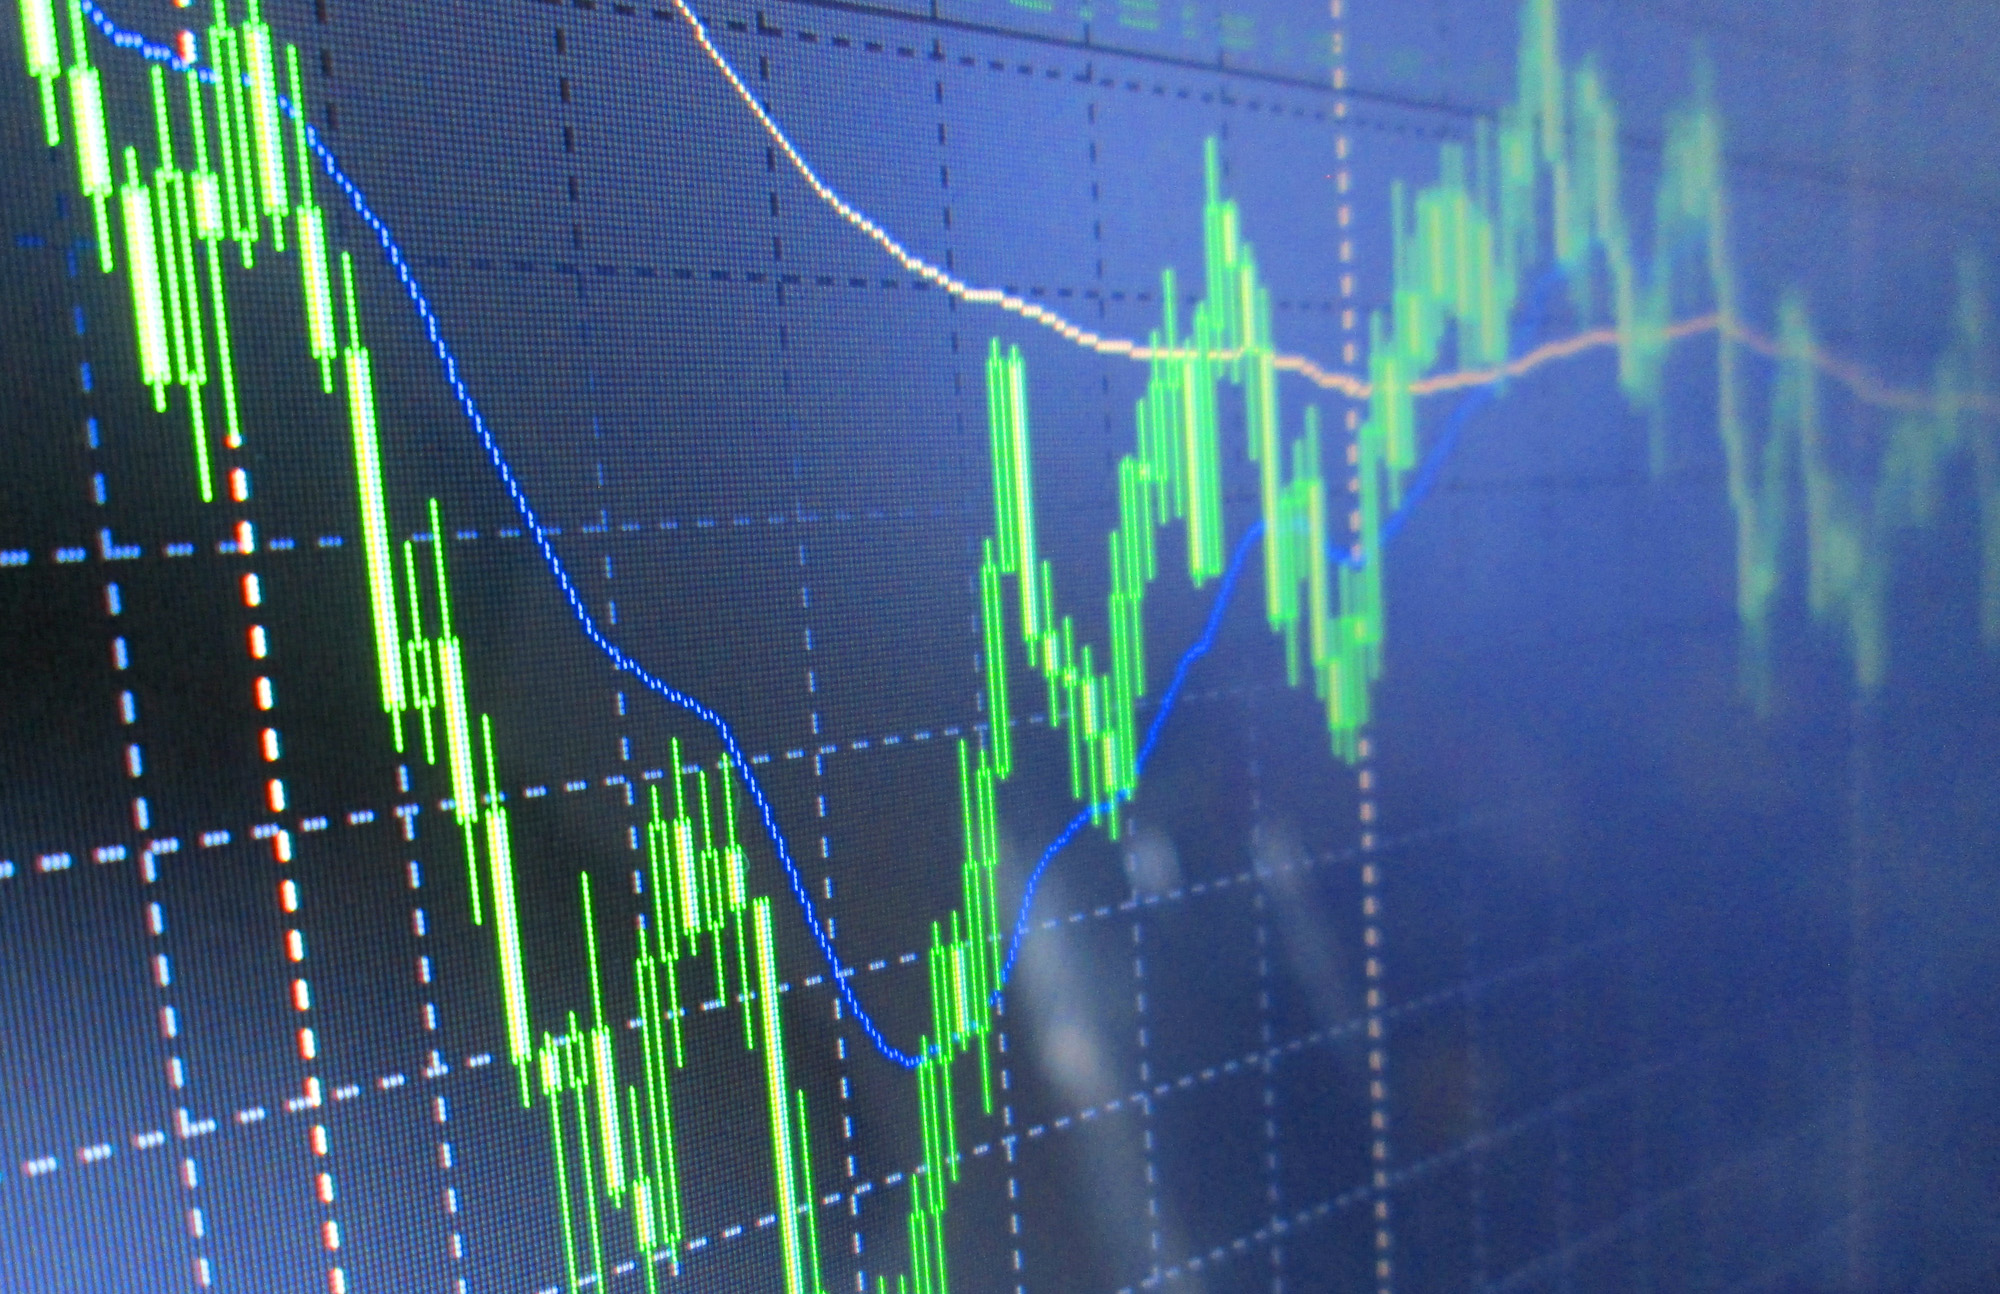 Stock Exchange Graph, Banking, Number, Information, Invest, HQ Photo